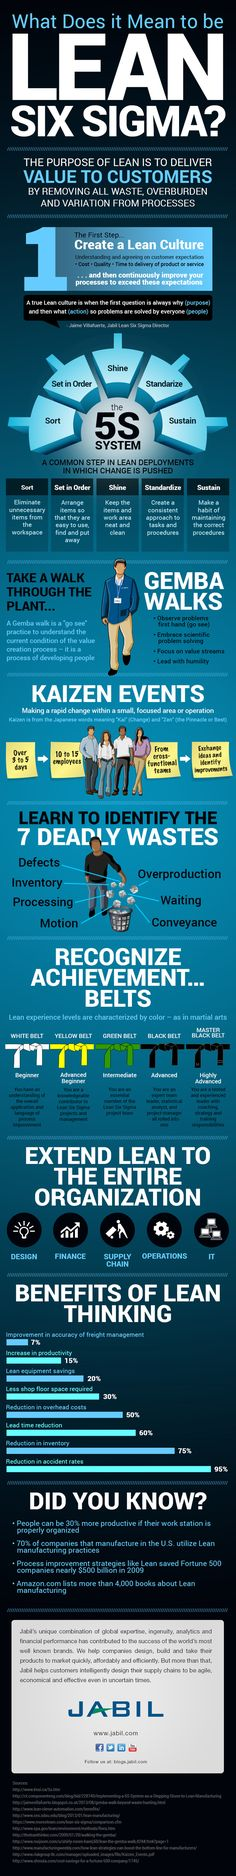 64 best Lean Manufacturing images on Pinterest Lean - example flyer